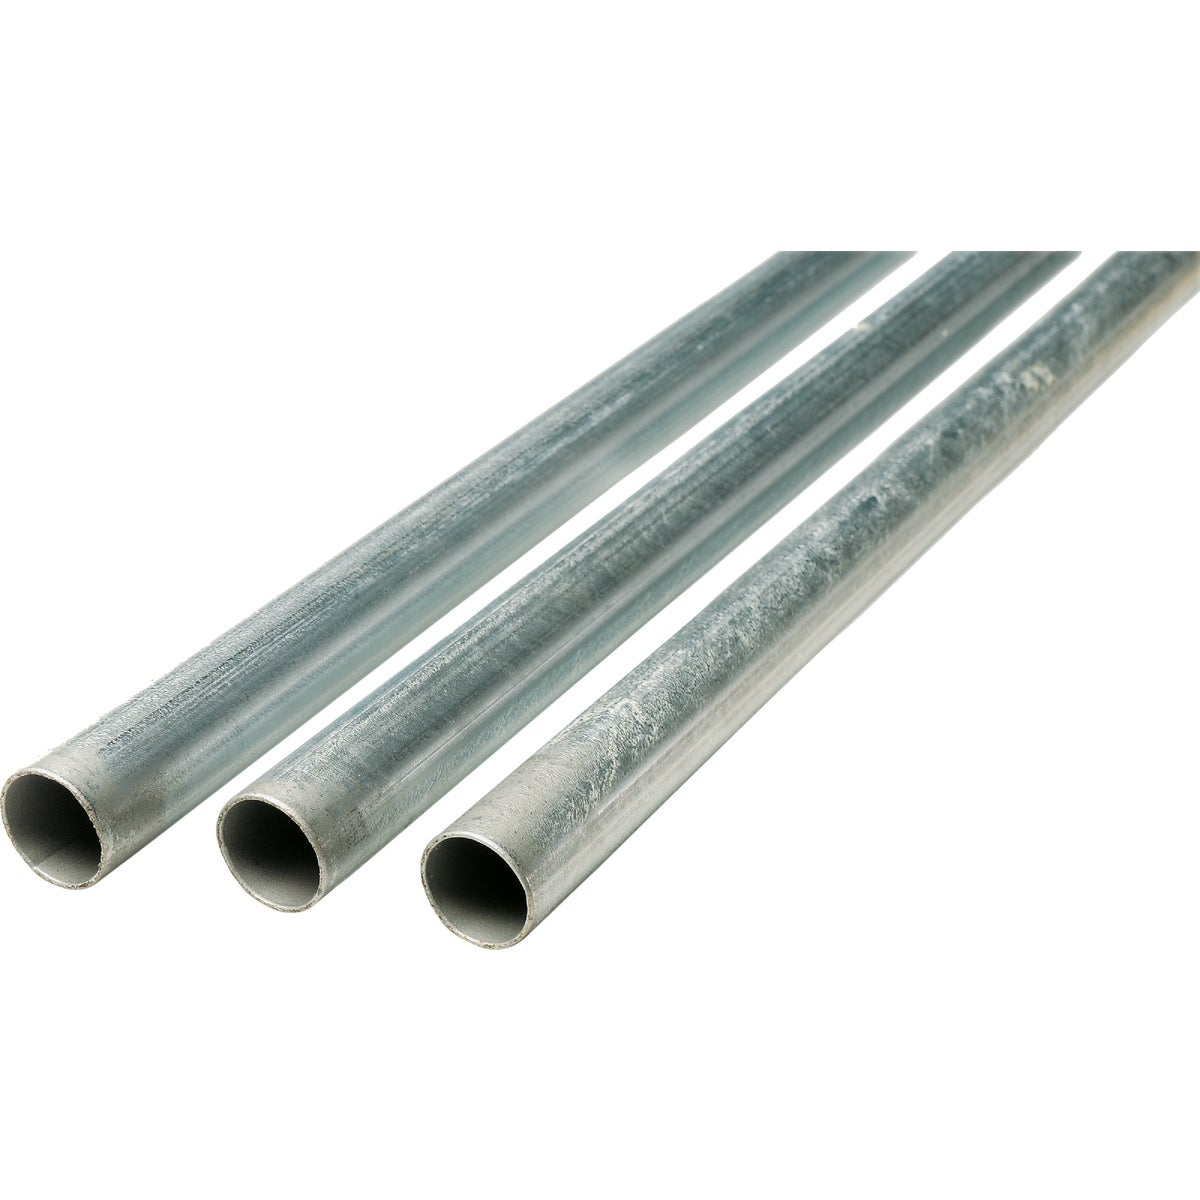 "3/4"" EMT CONDUIT"